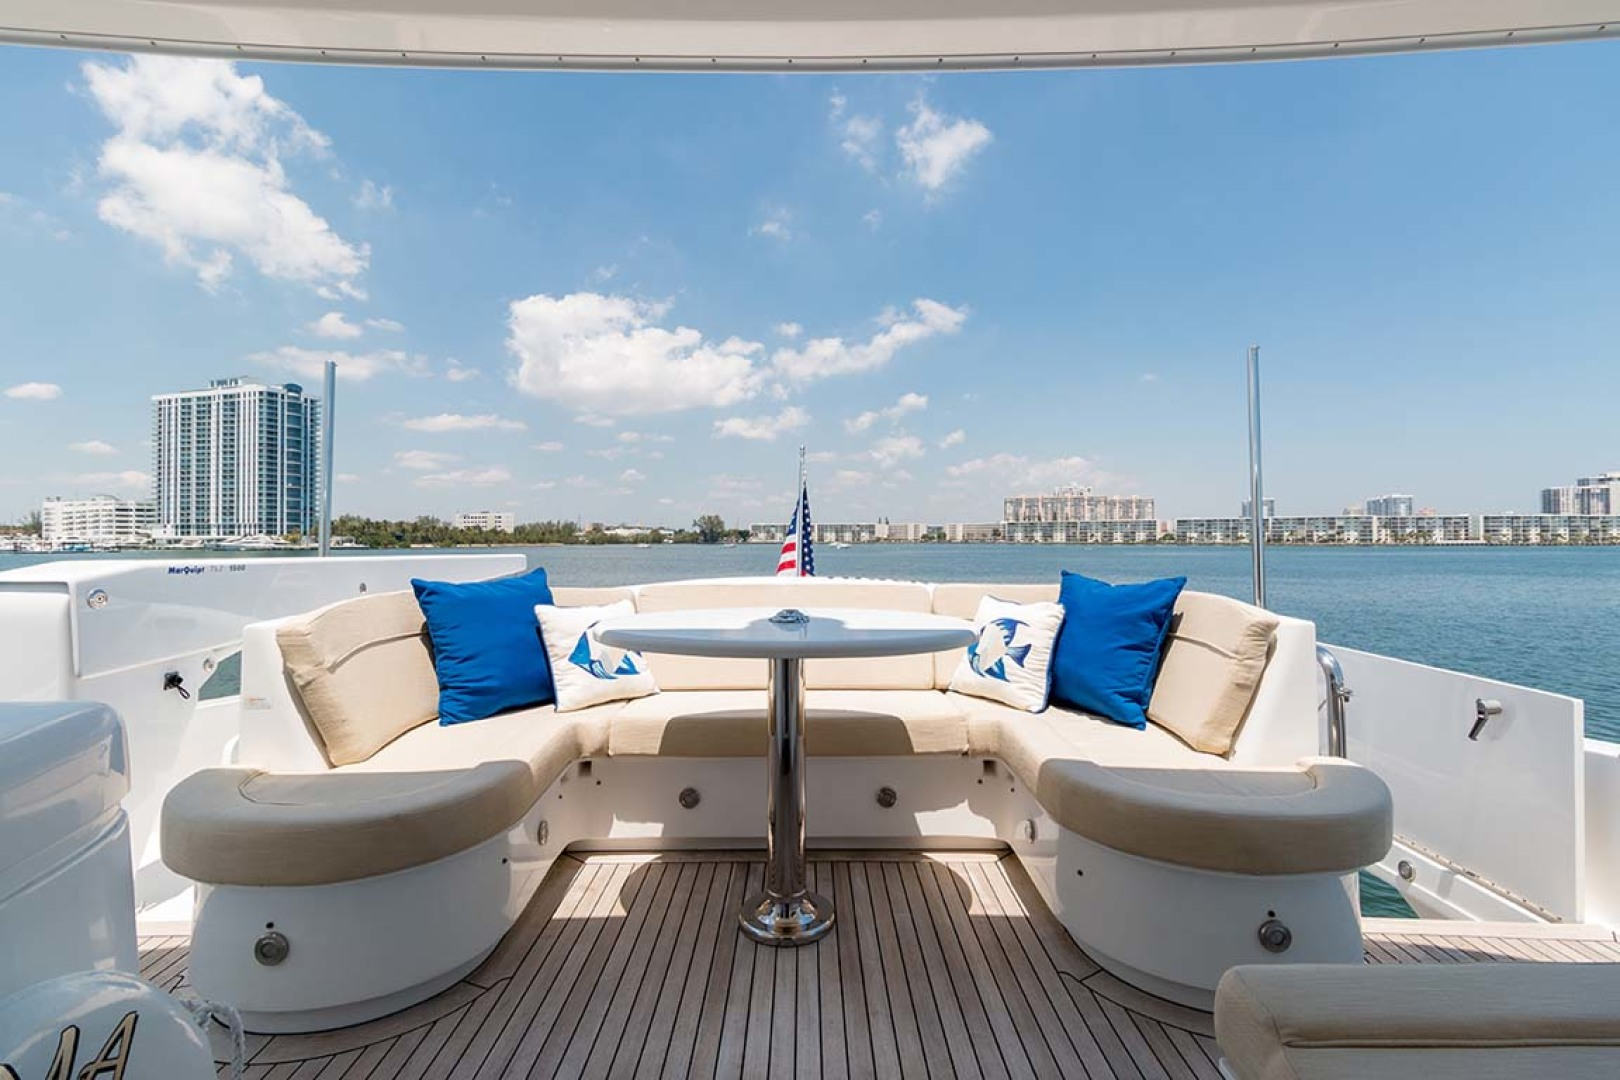 Hatteras-80 Motor Yacht 2007-Pneuma Ocean Reef-Florida-United States-U-Shaped Lounge with Table-1092667 | Thumbnail